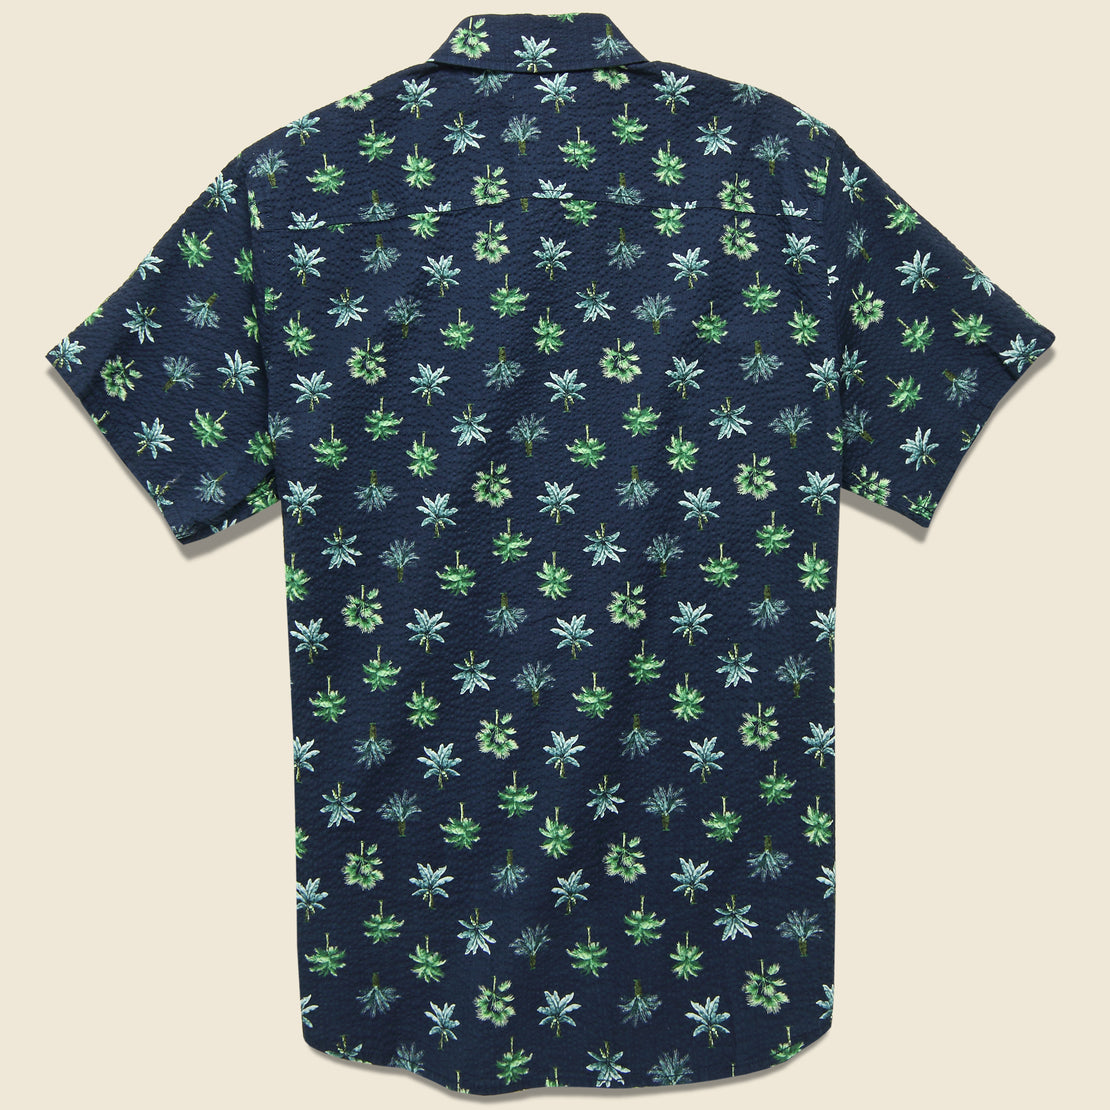 Rainforest Seersucker Shirt - Ocean Blue